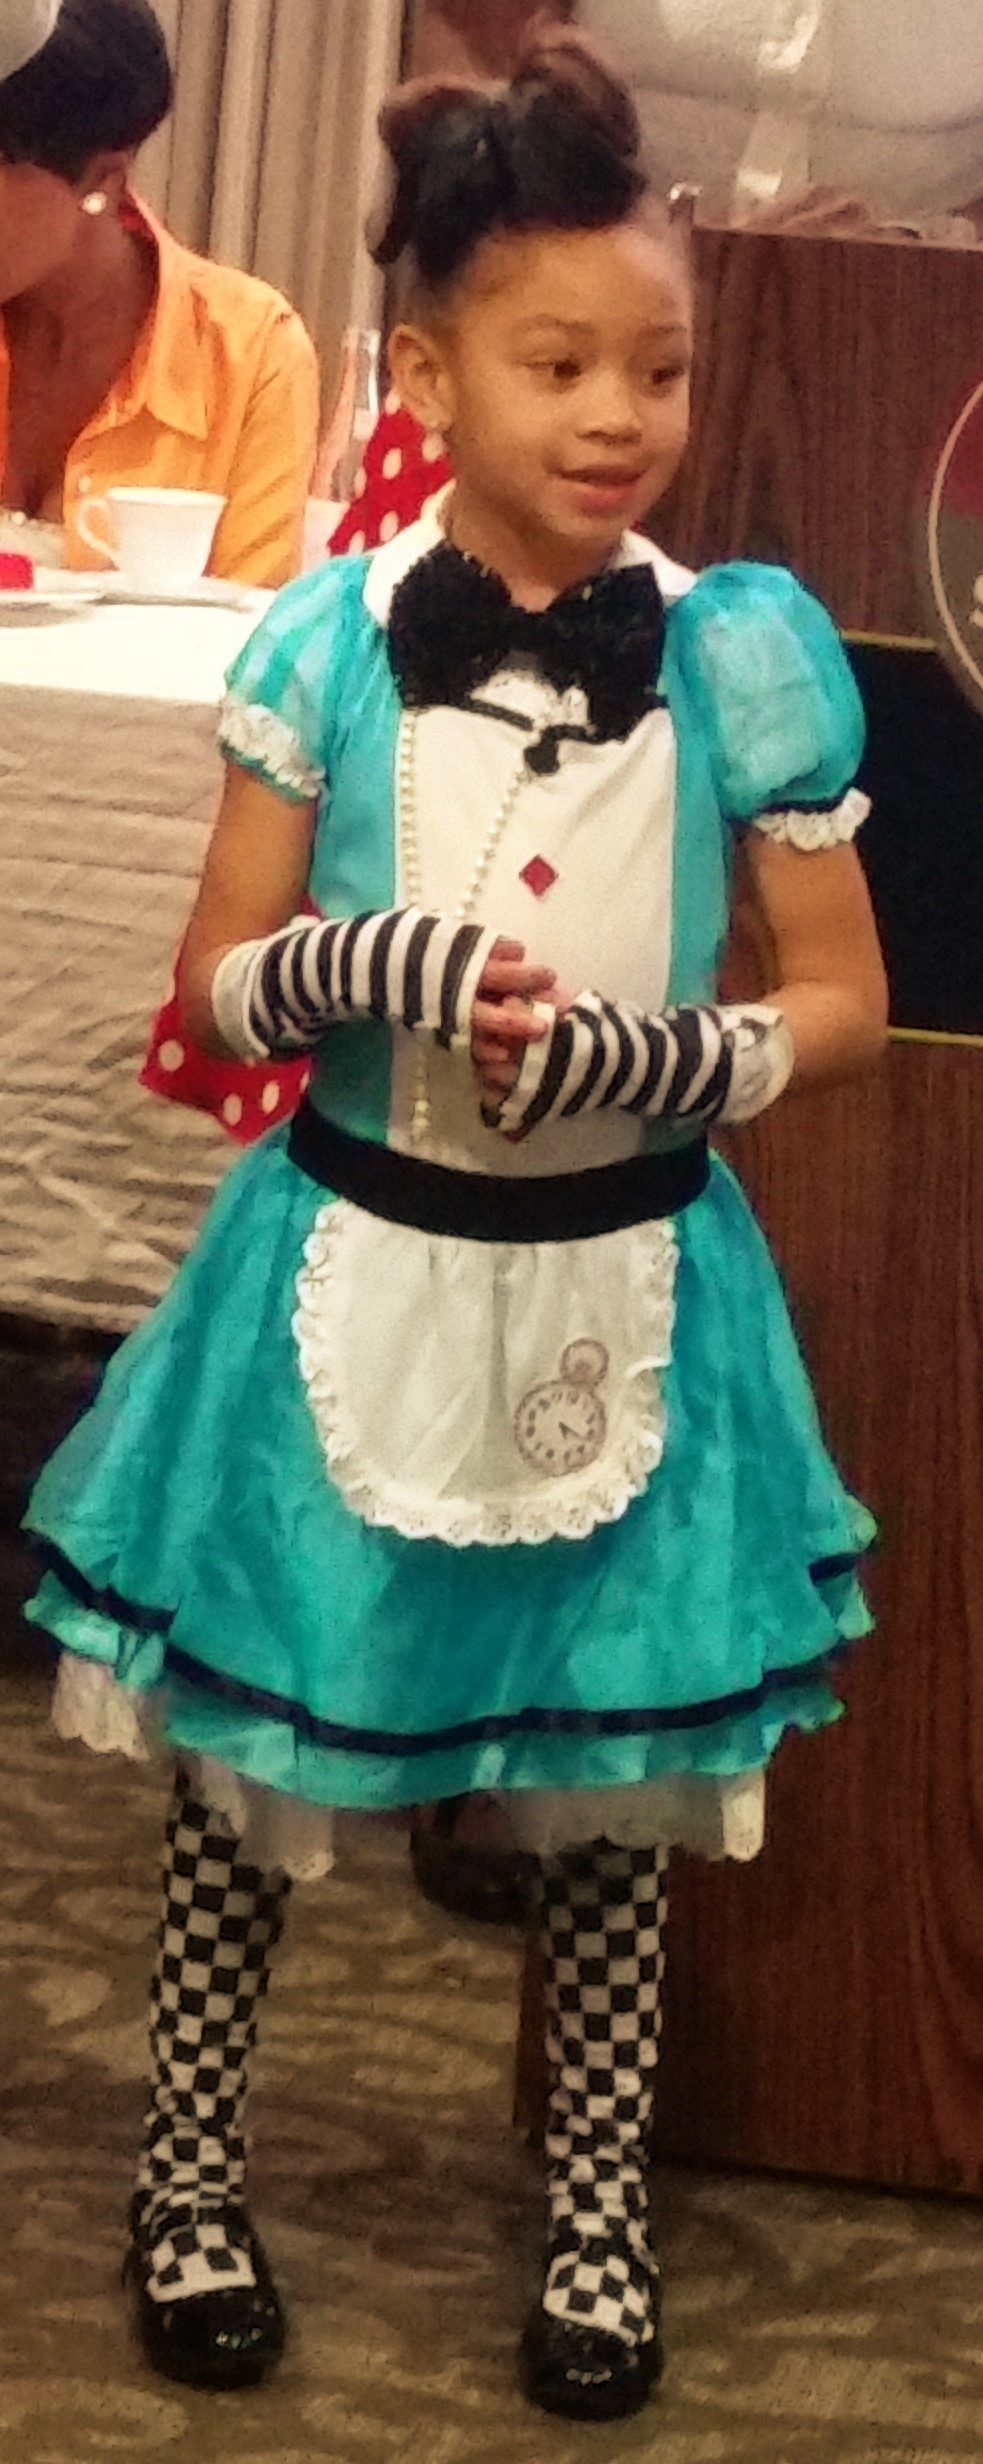 This cutie in the adorable blue tuxedo style dress is Savannah Banana, a five-year-old designer from New Jersey.